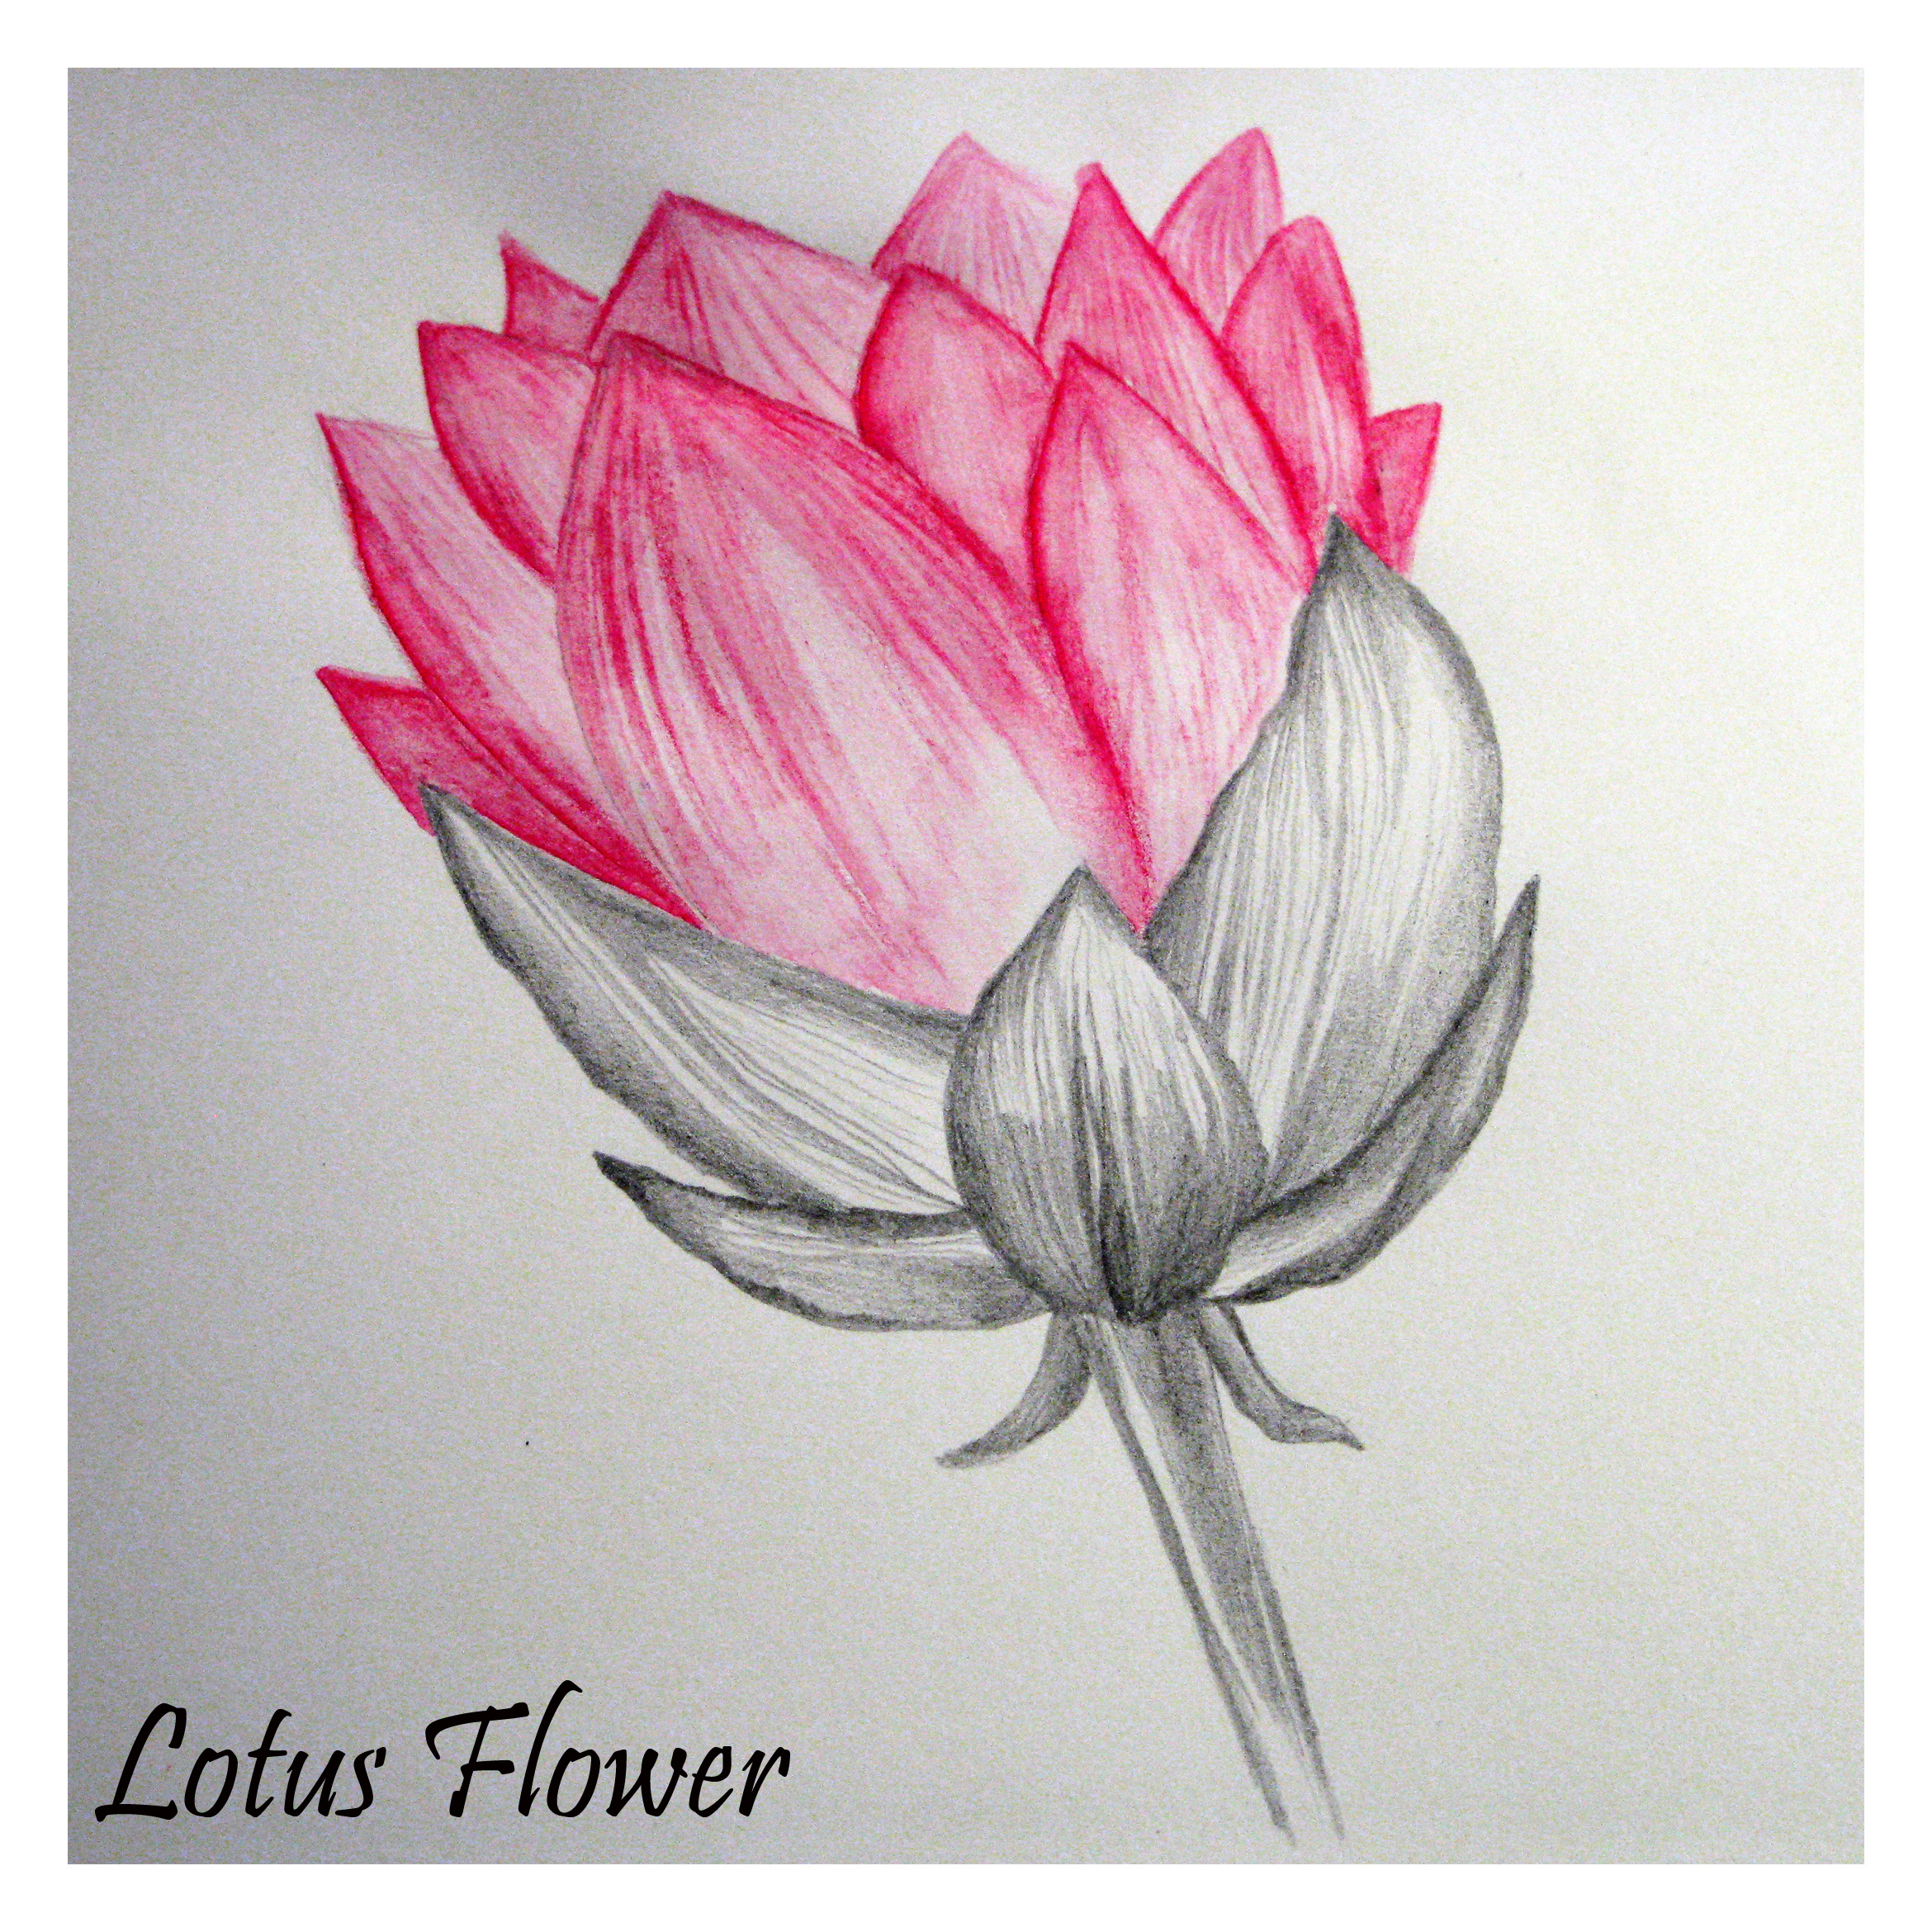 5 Days Of Flower Drawings Day 1 Lotus Flower The Little Leaf